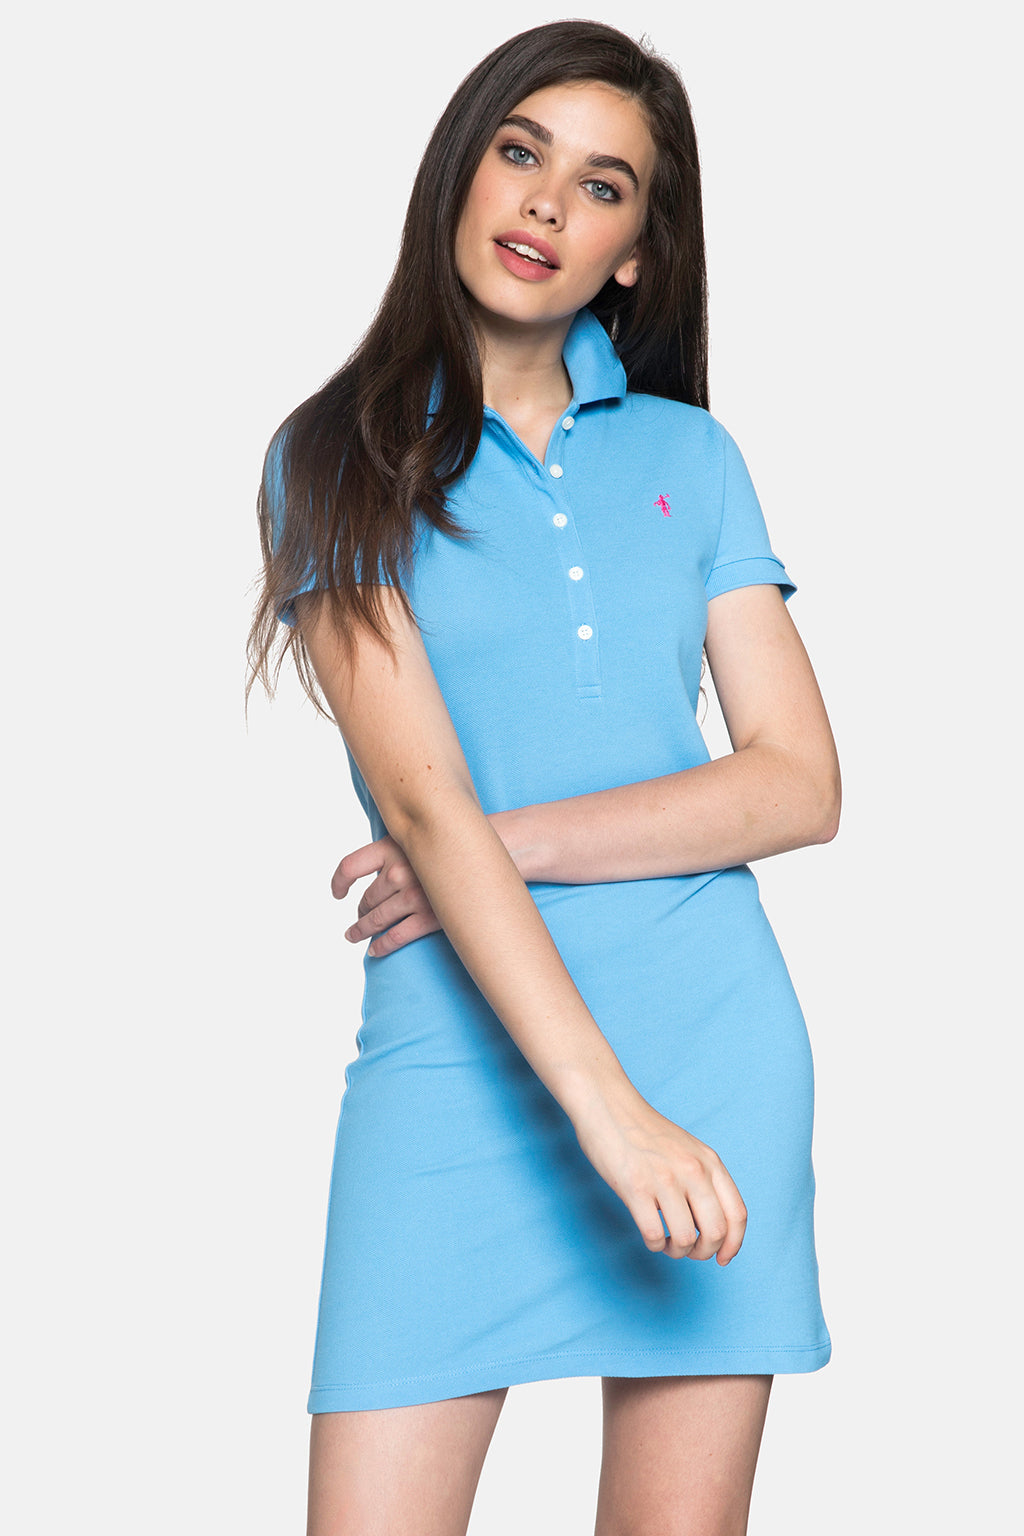 Blue polo dress